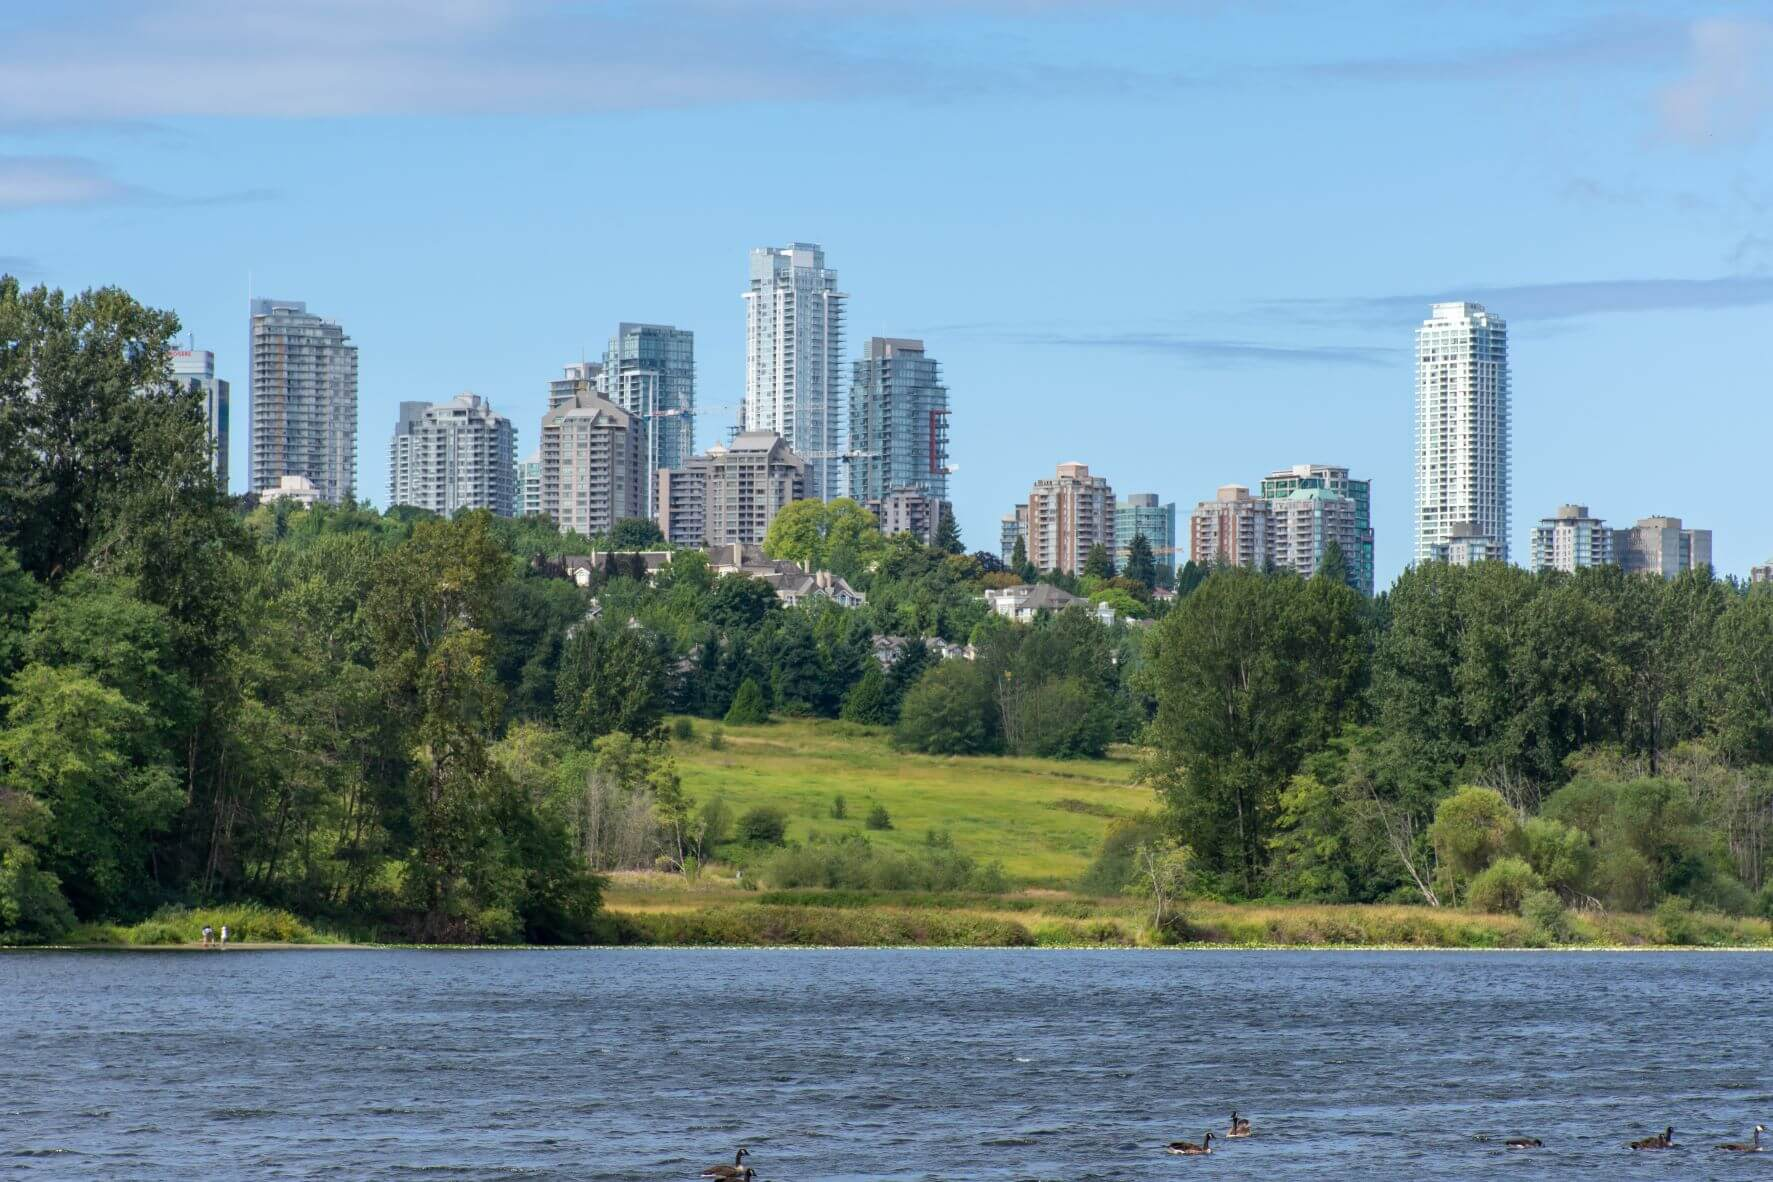 burnaby skyscrapers with green grass and lake in foreground